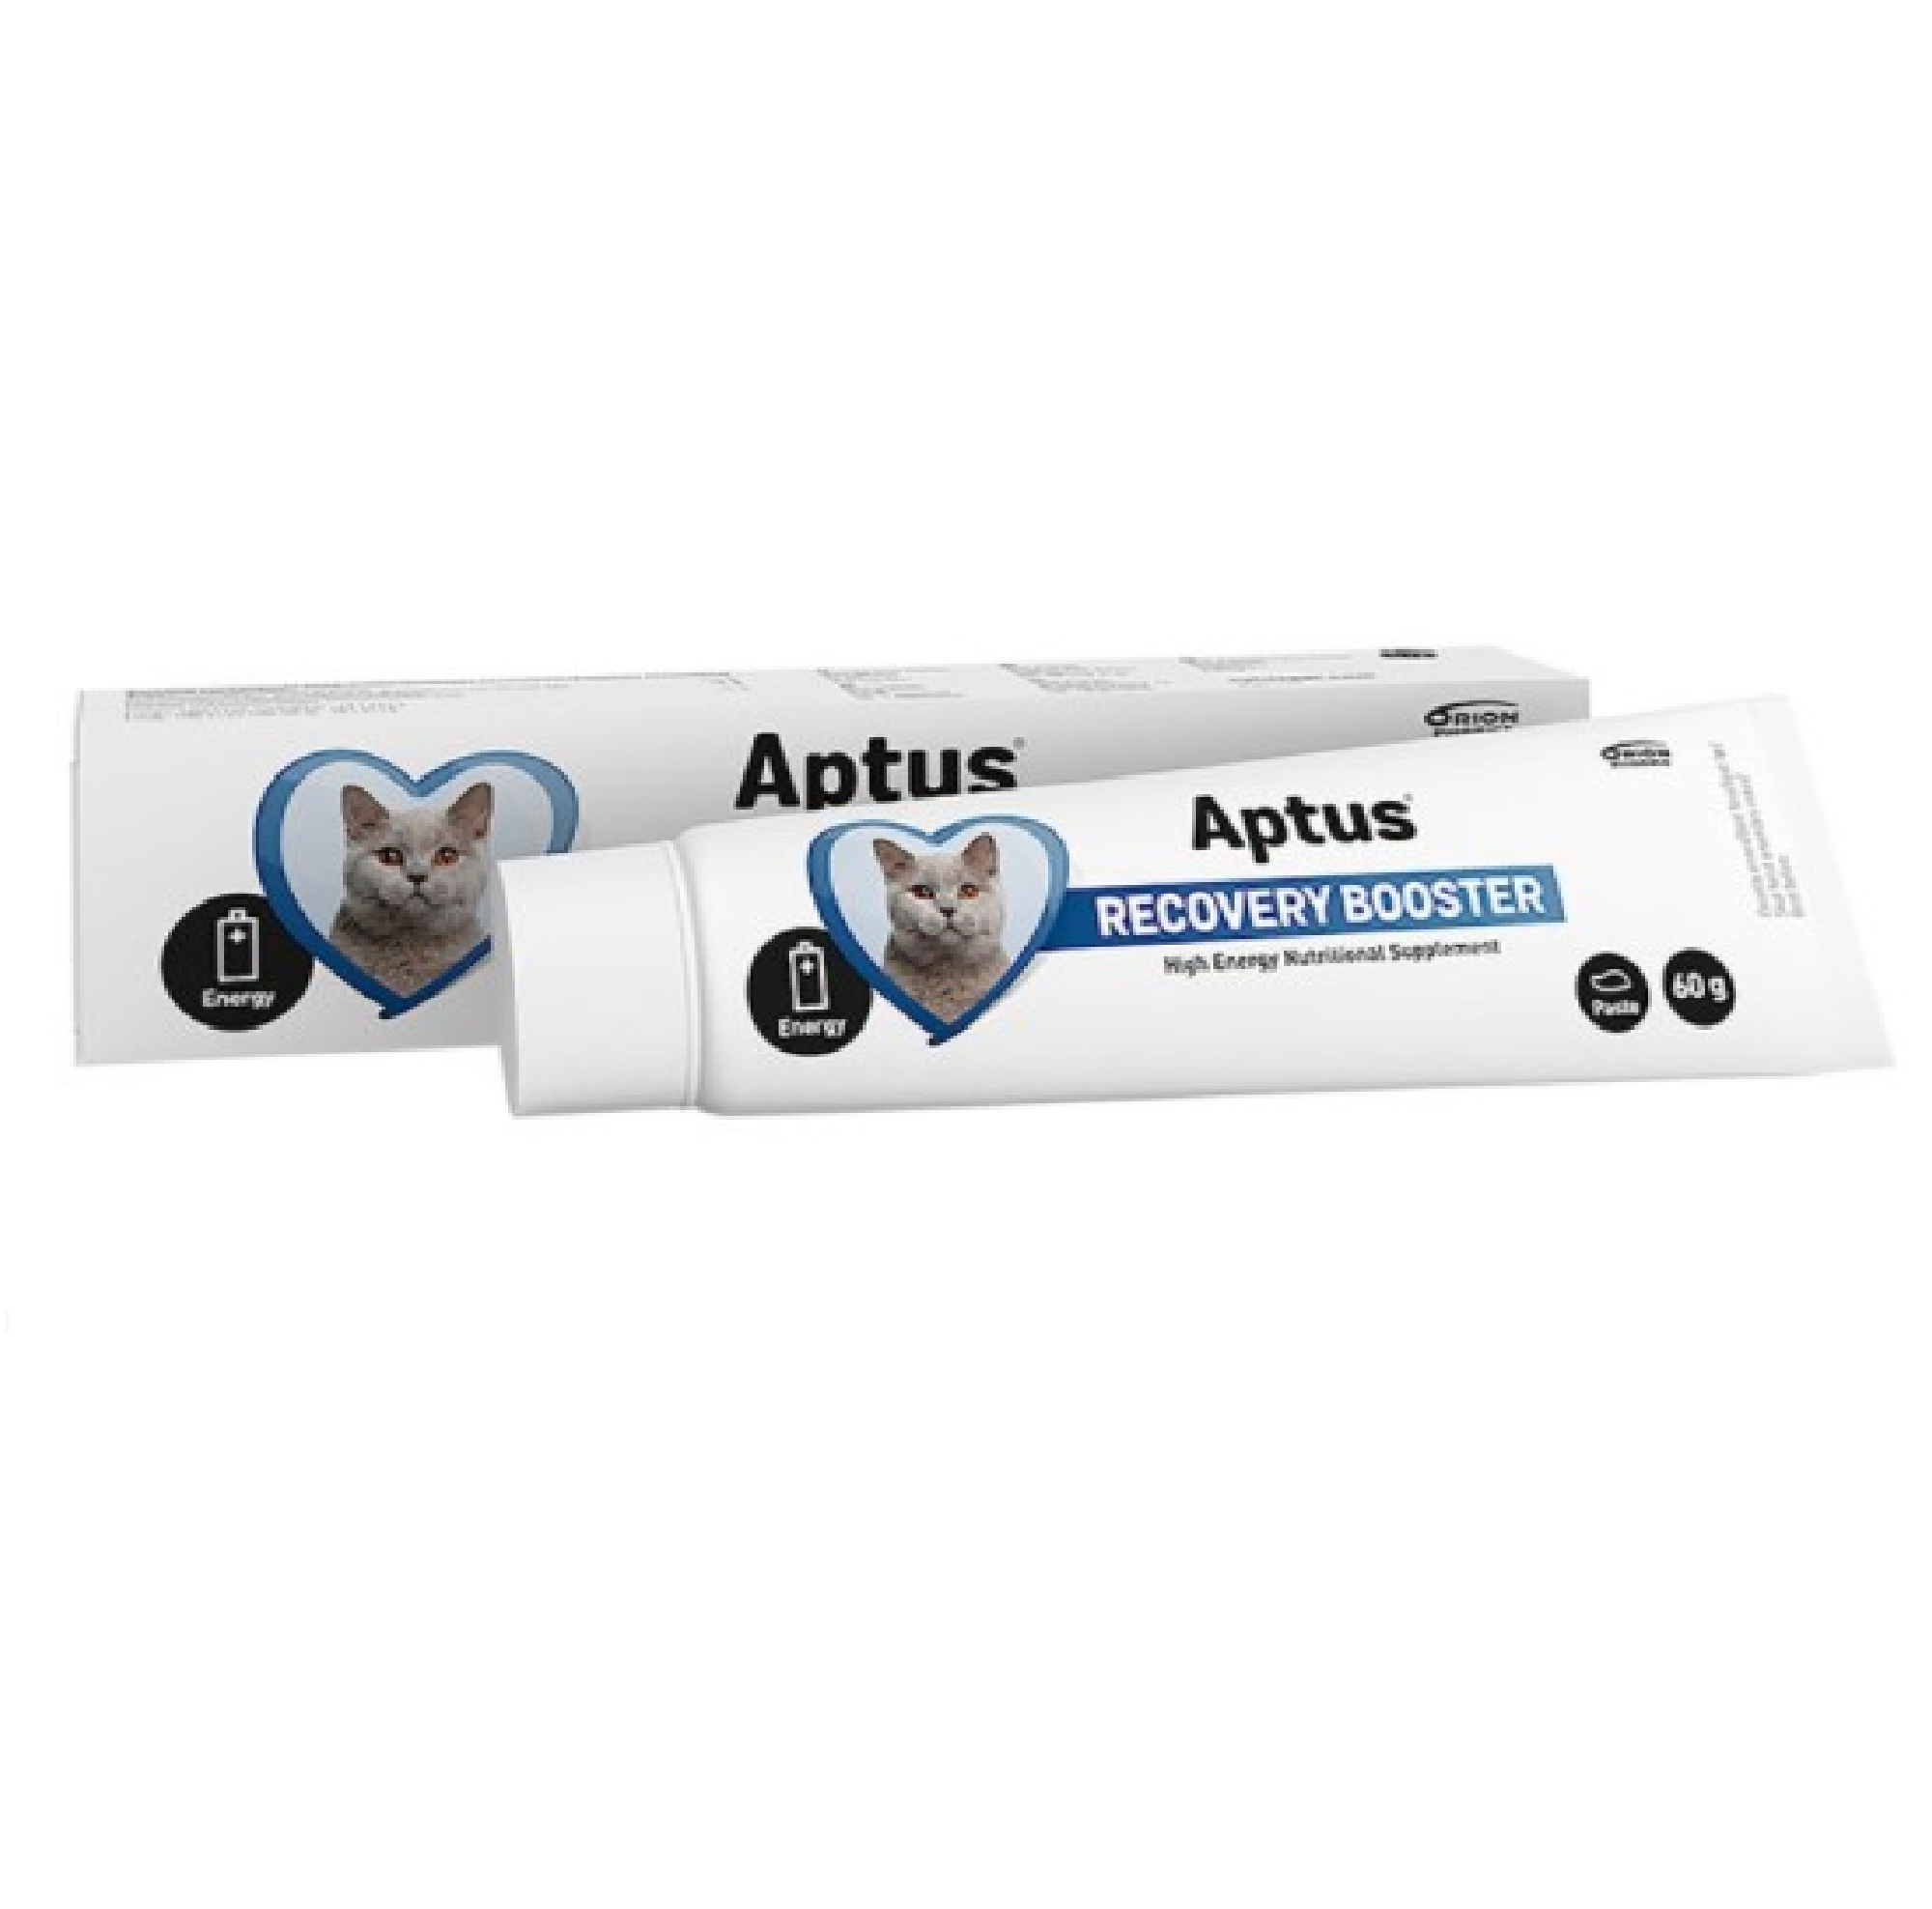 Aptus Recovery Booster Cat